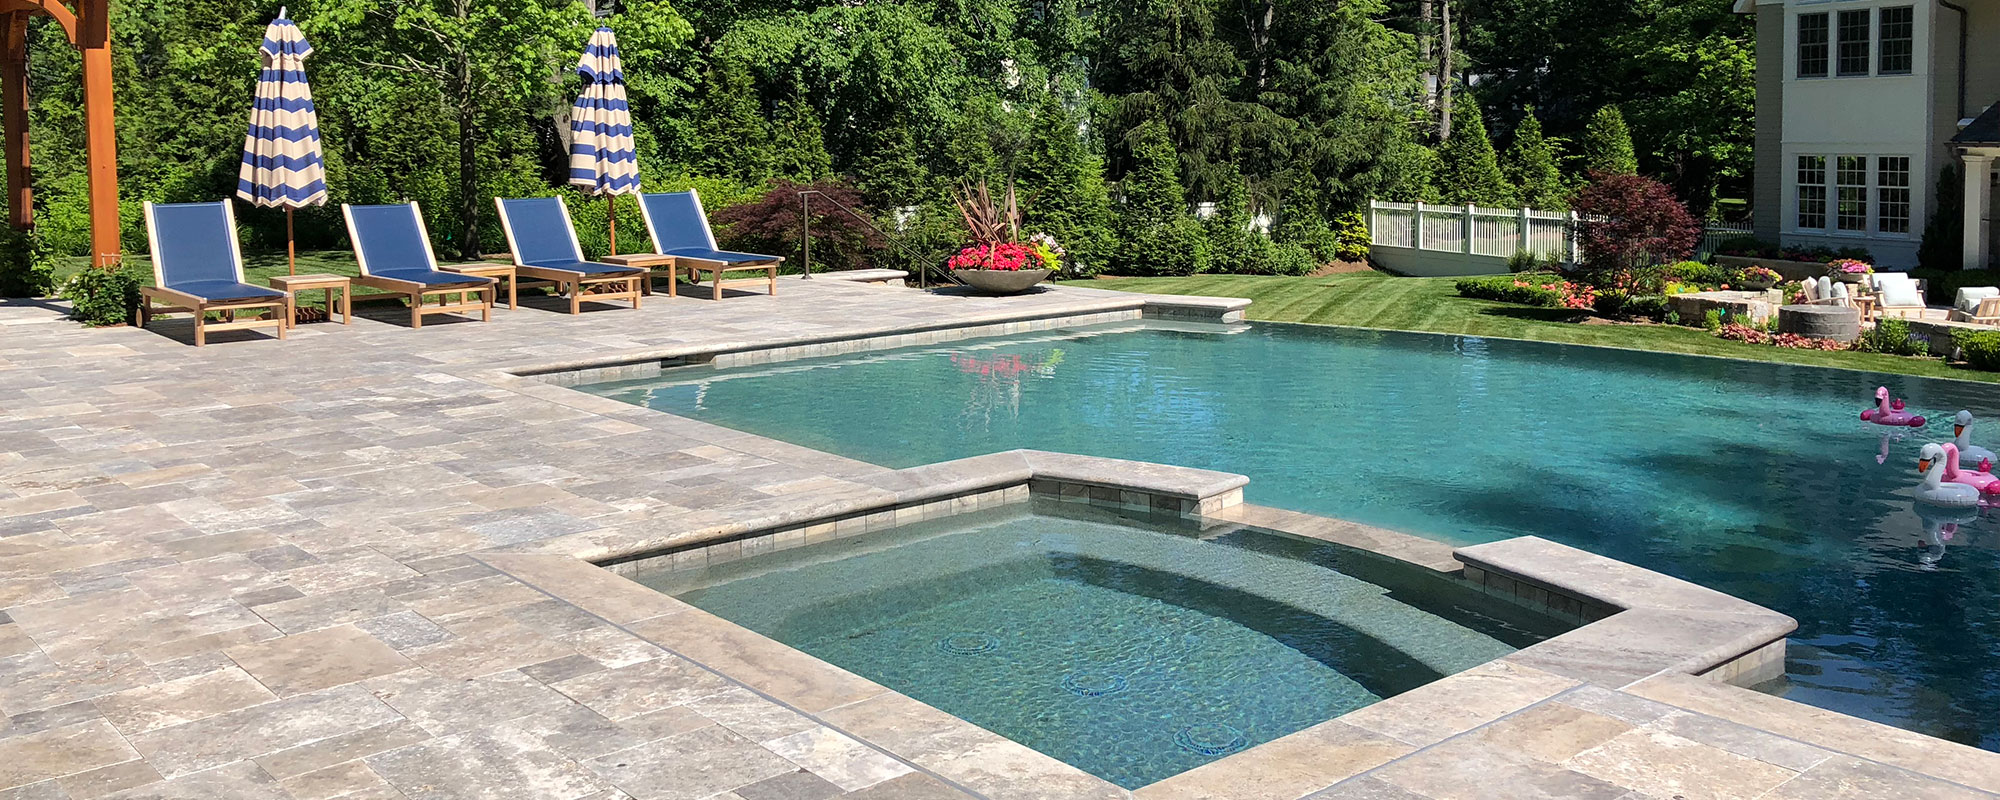 Pool and Landscape Design and Construction_New View, Inc.